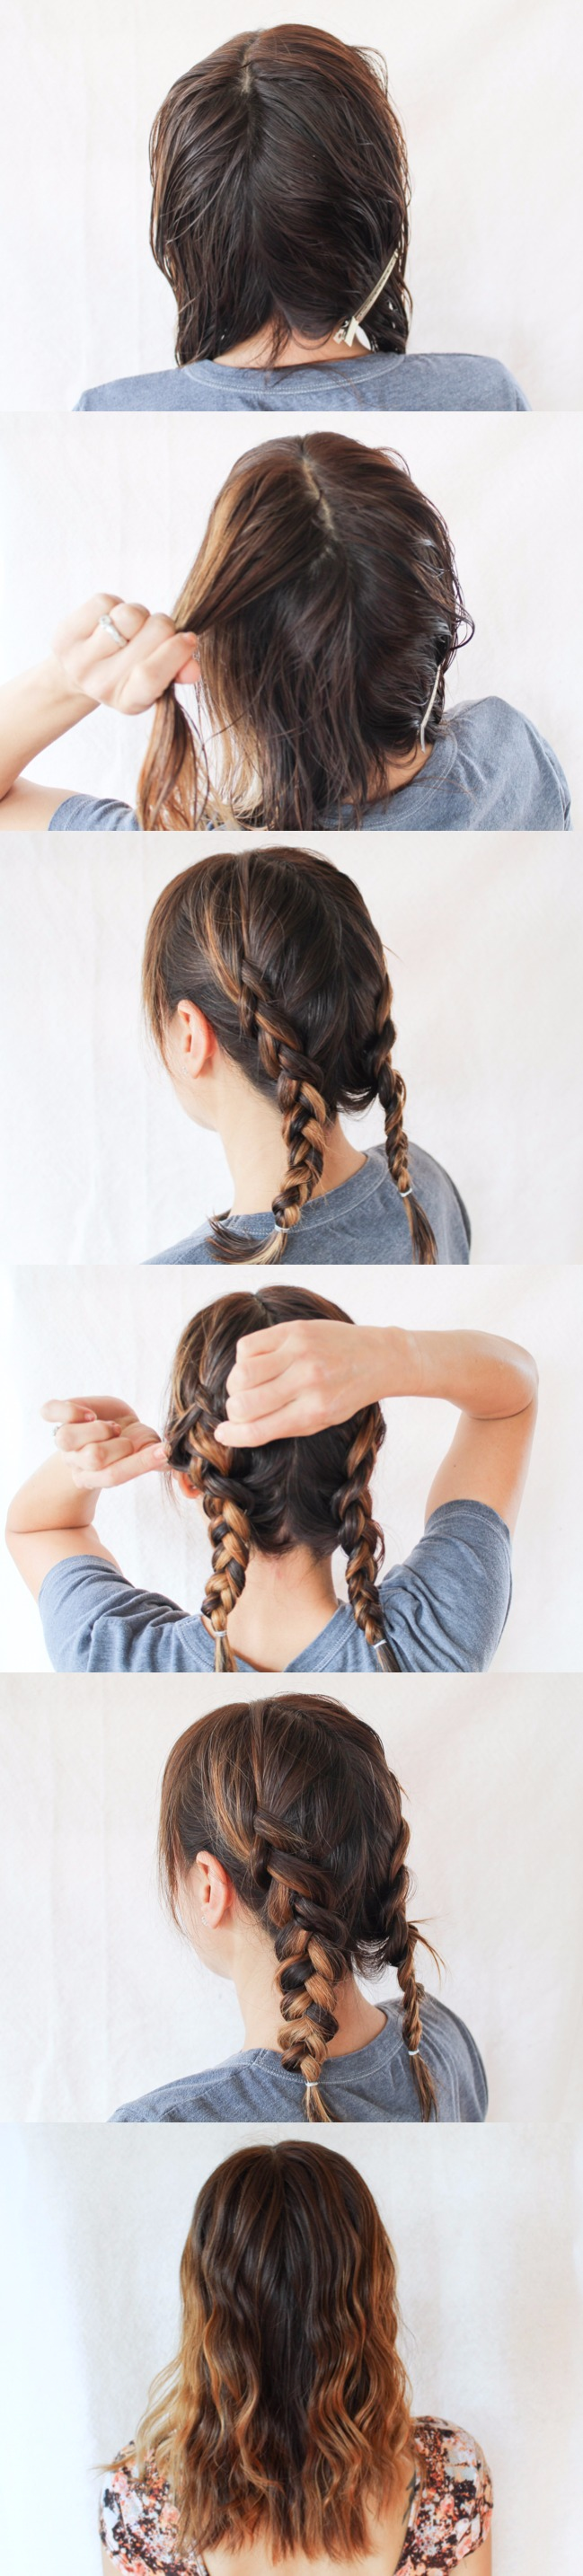 Braid Waves Tutorial